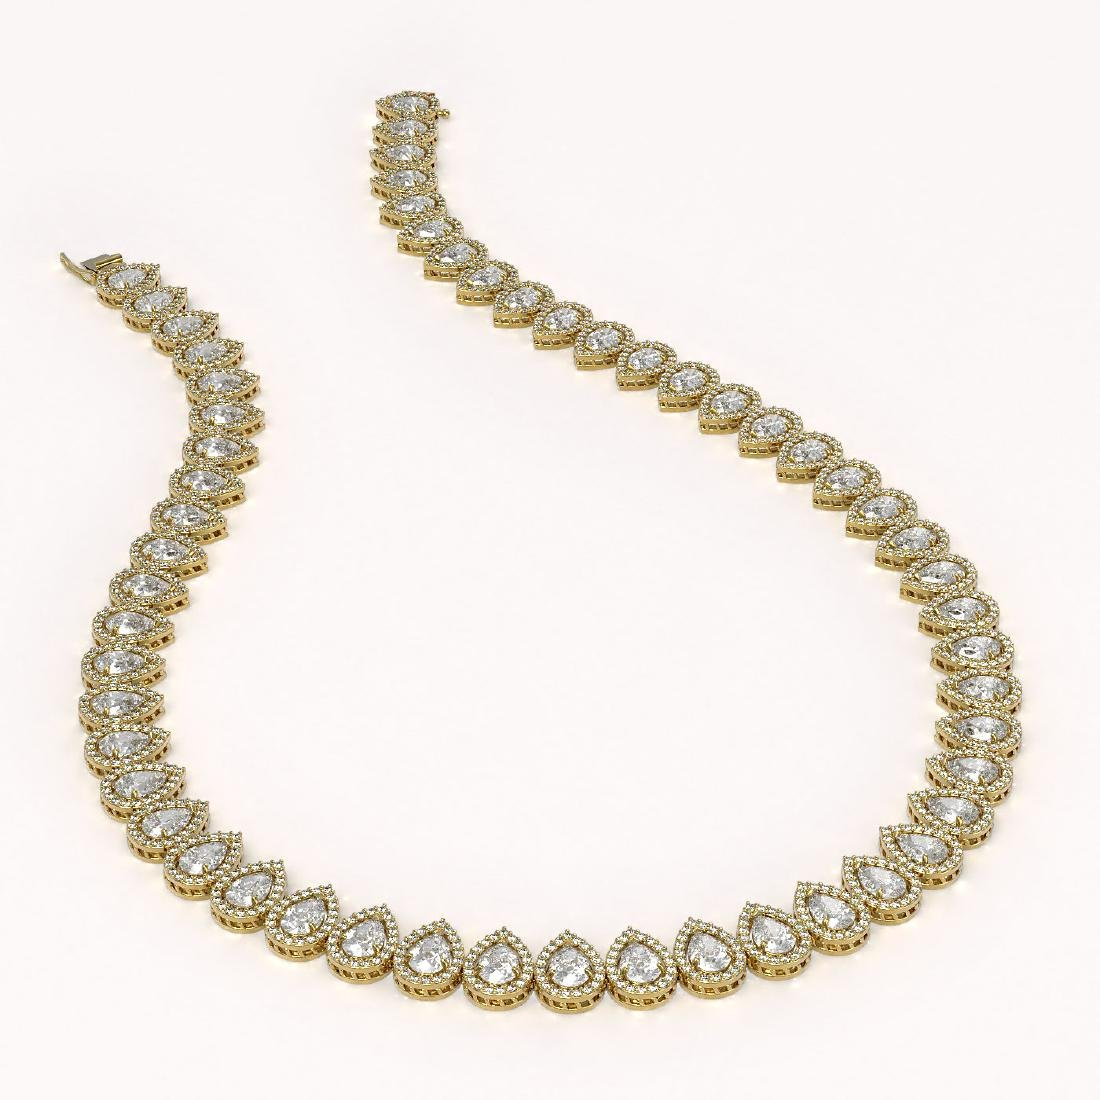 34.83 CTW Pear Diamond Designer Necklace 18K Yellow - 2